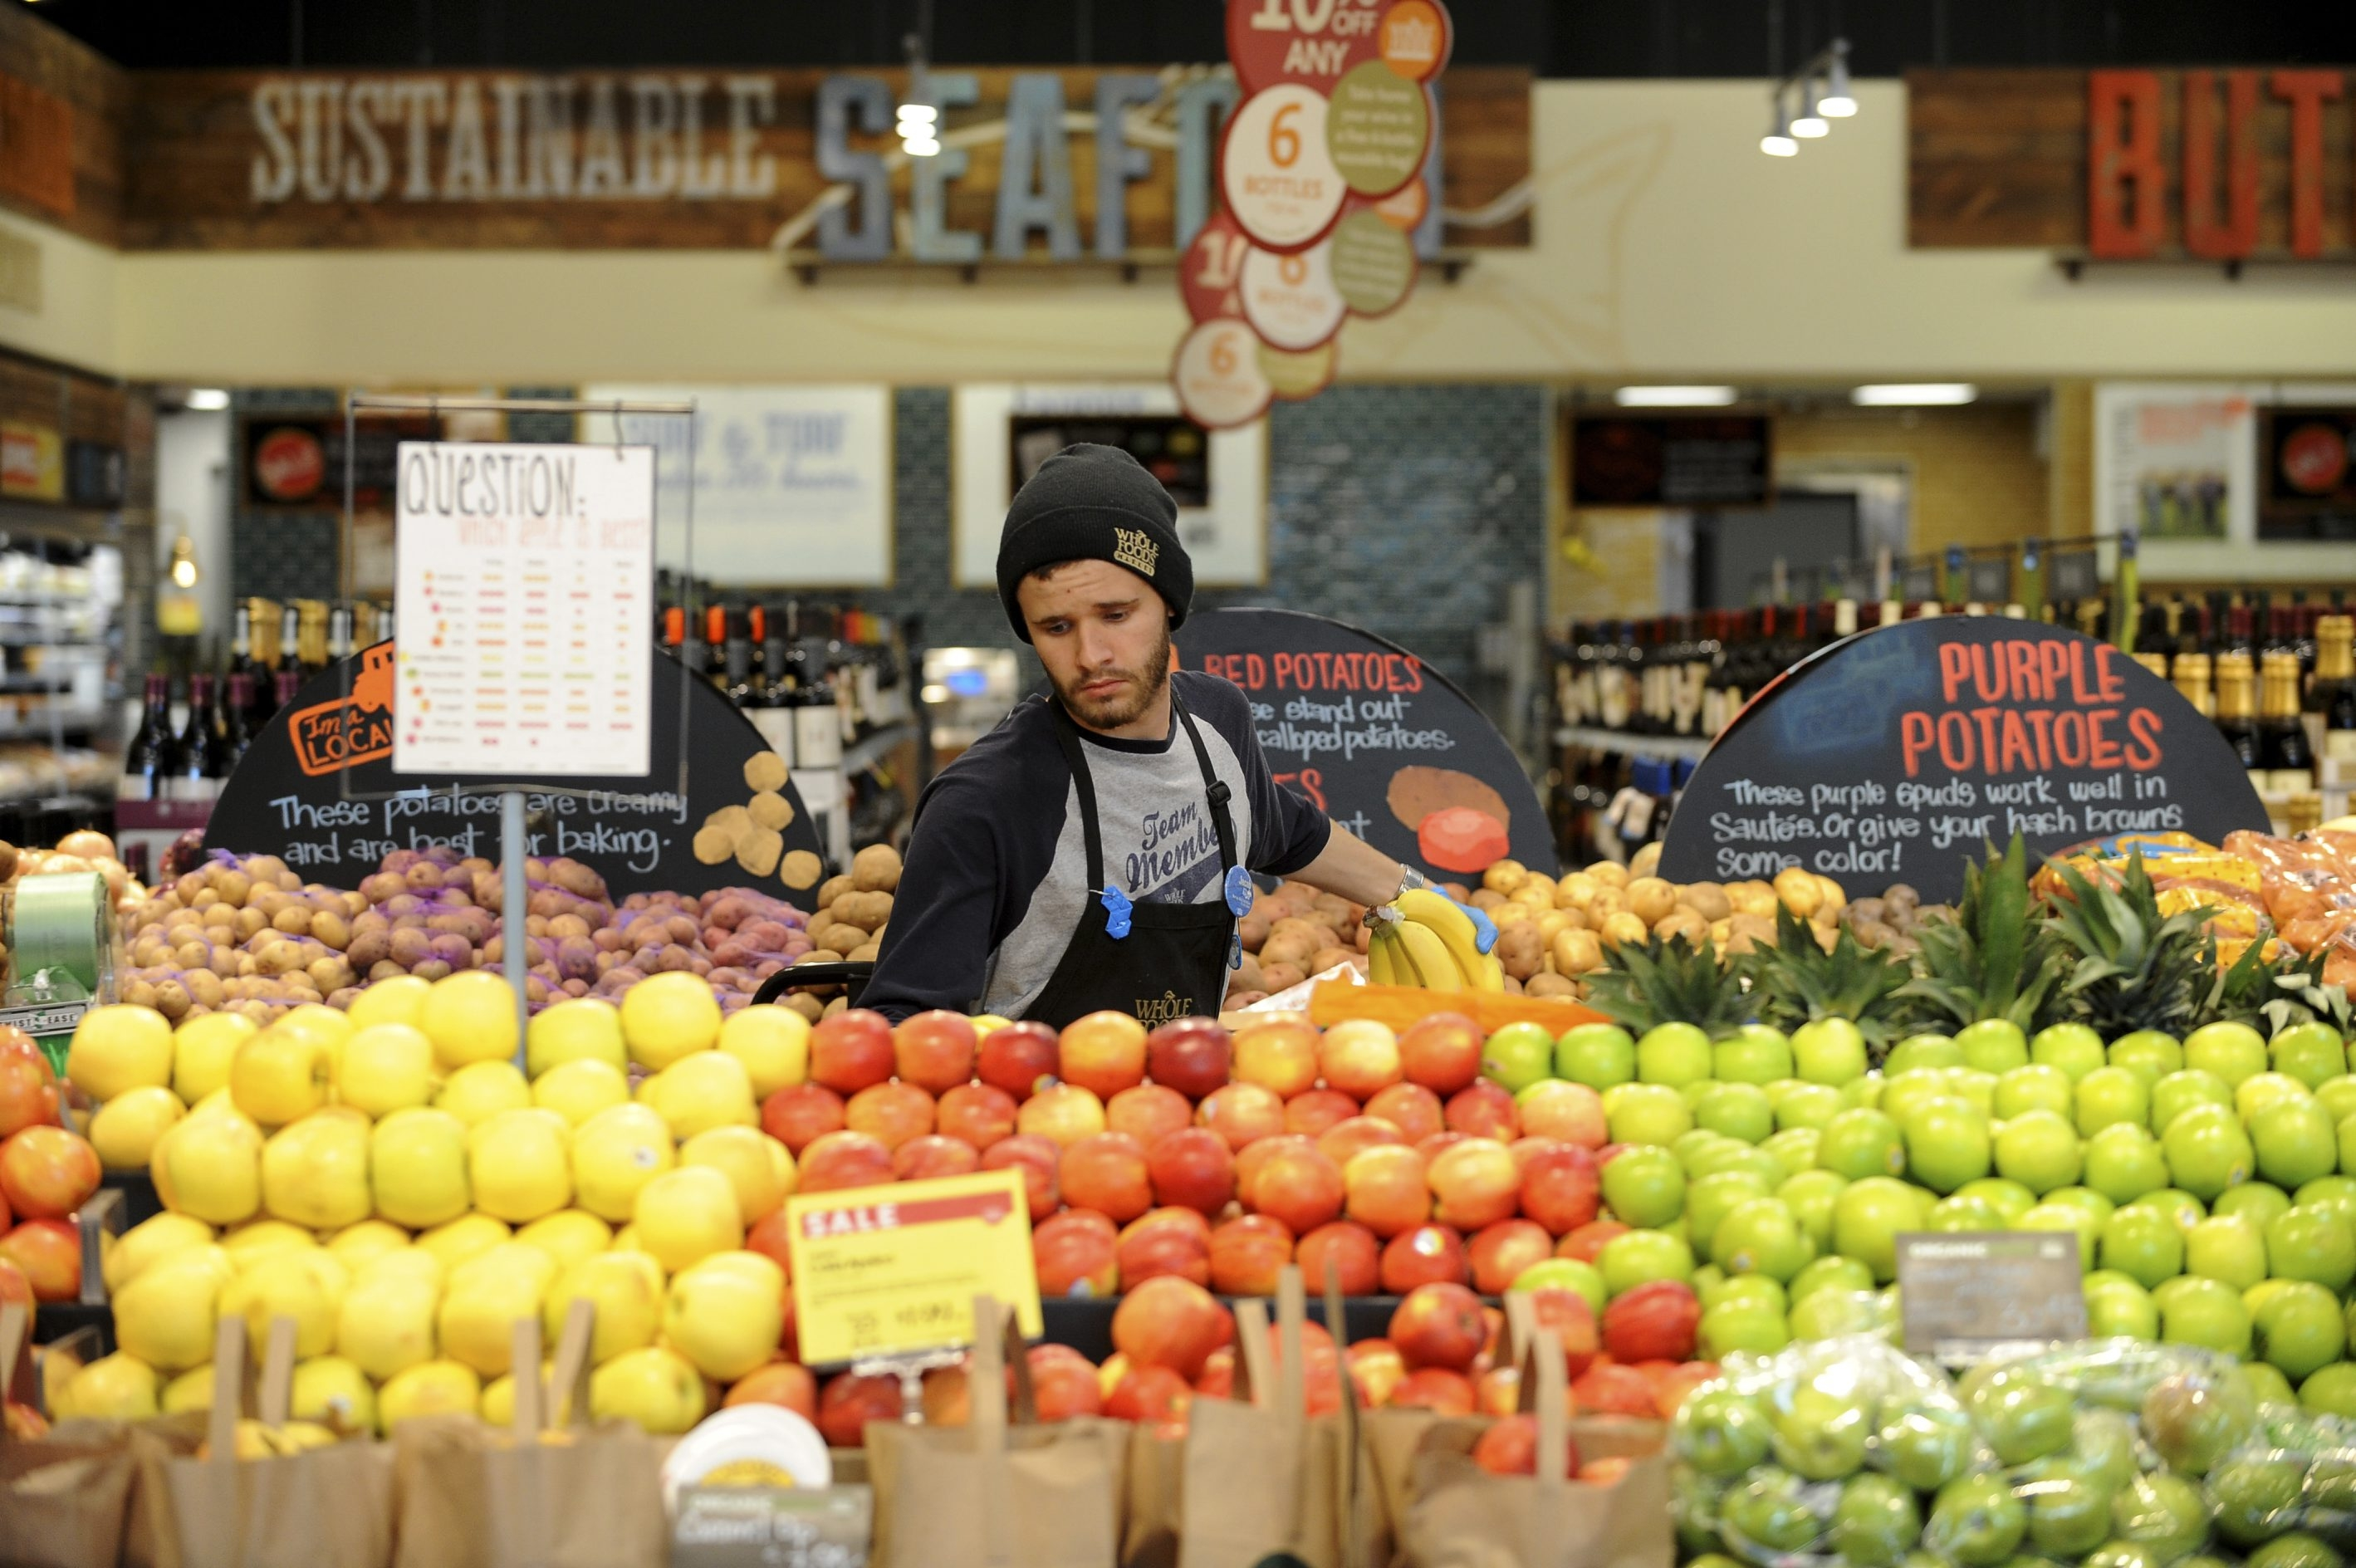 Whole Foods plans to open its first store in the area in the Northtown Plaza in 2016.